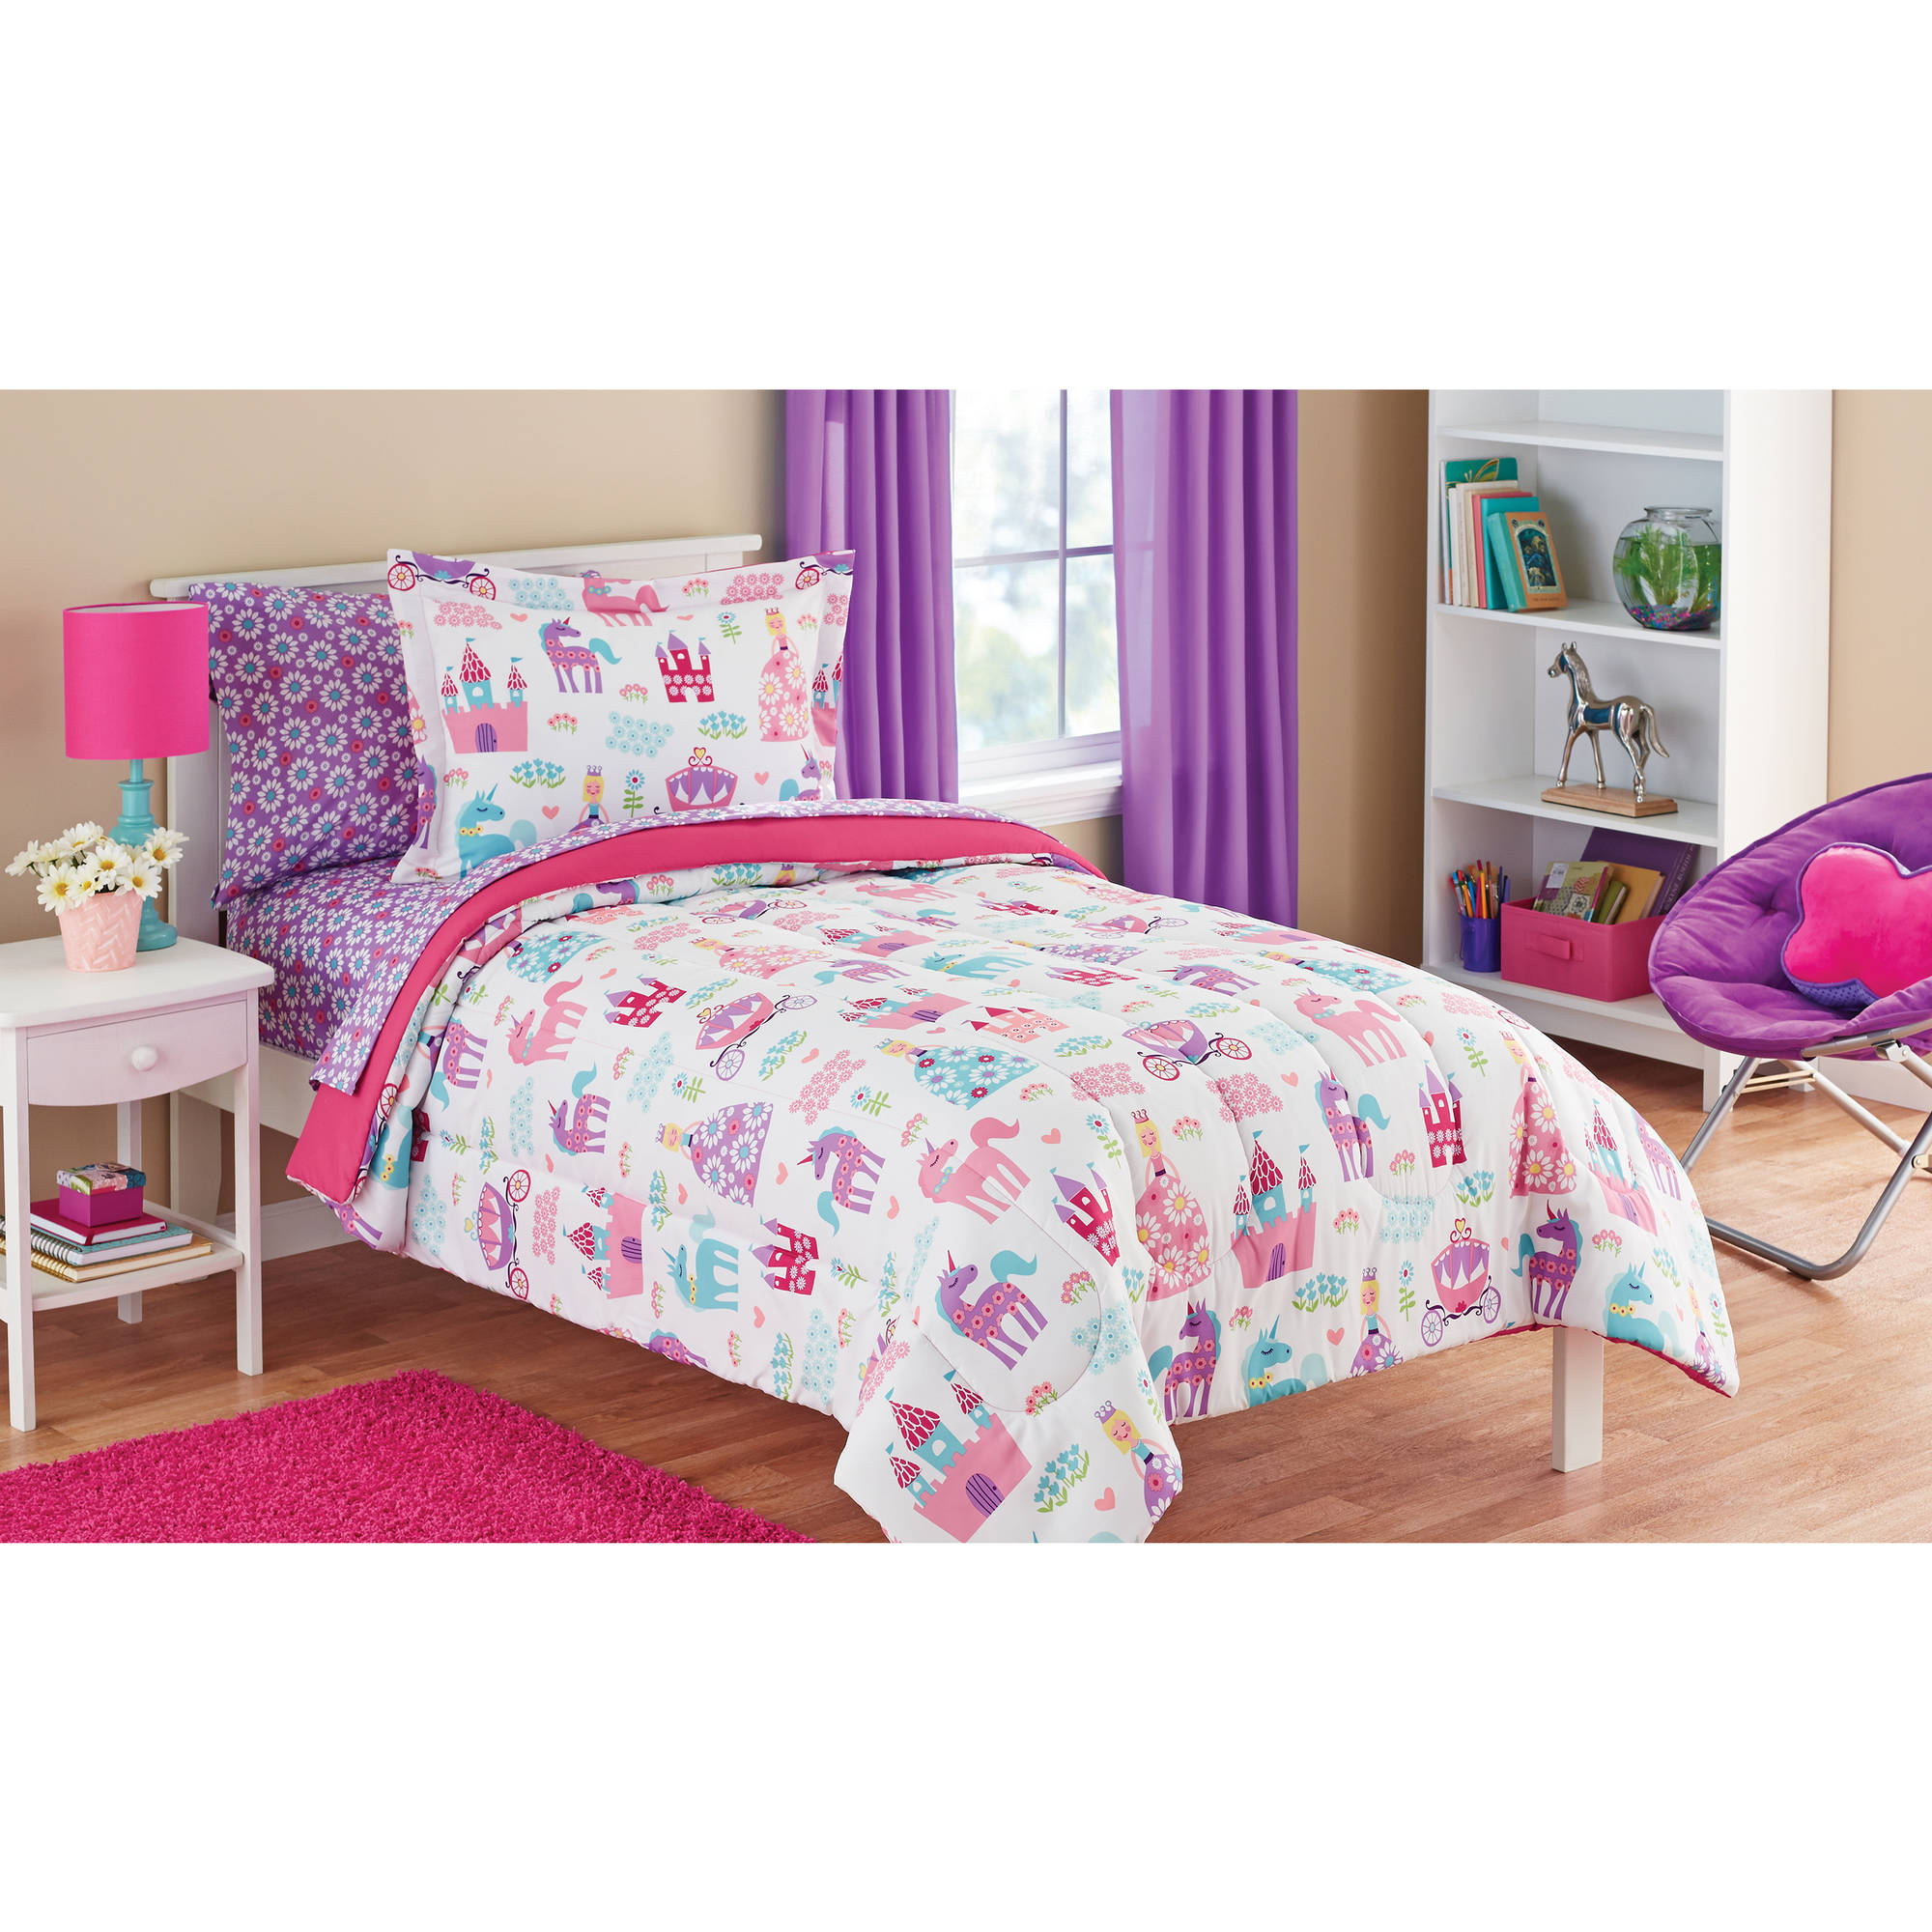 Where To Buy Nice Duvet Covers Mainstays Kids Pretty Princess Bed In A Bag Coordinating Bedding Set Walmart